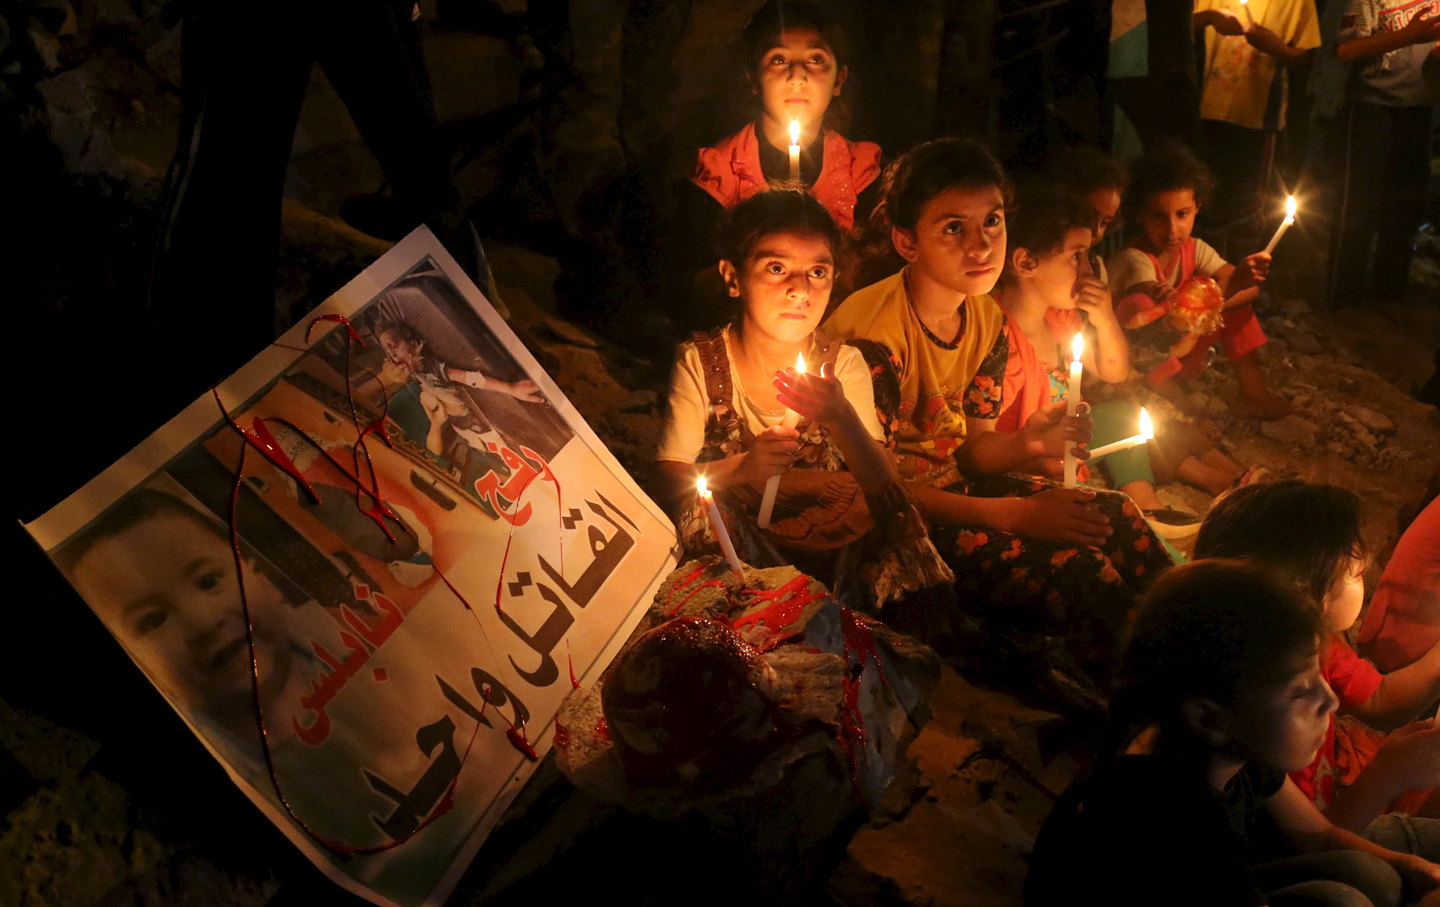 Palestinian children light candles during a rally to remember 18-month-old Palestinian baby Ali Dawabsheh who was killed after his family's house was set on fire in a suspected attack by Jewish extremists in Rafah in the southern Gaza Strip